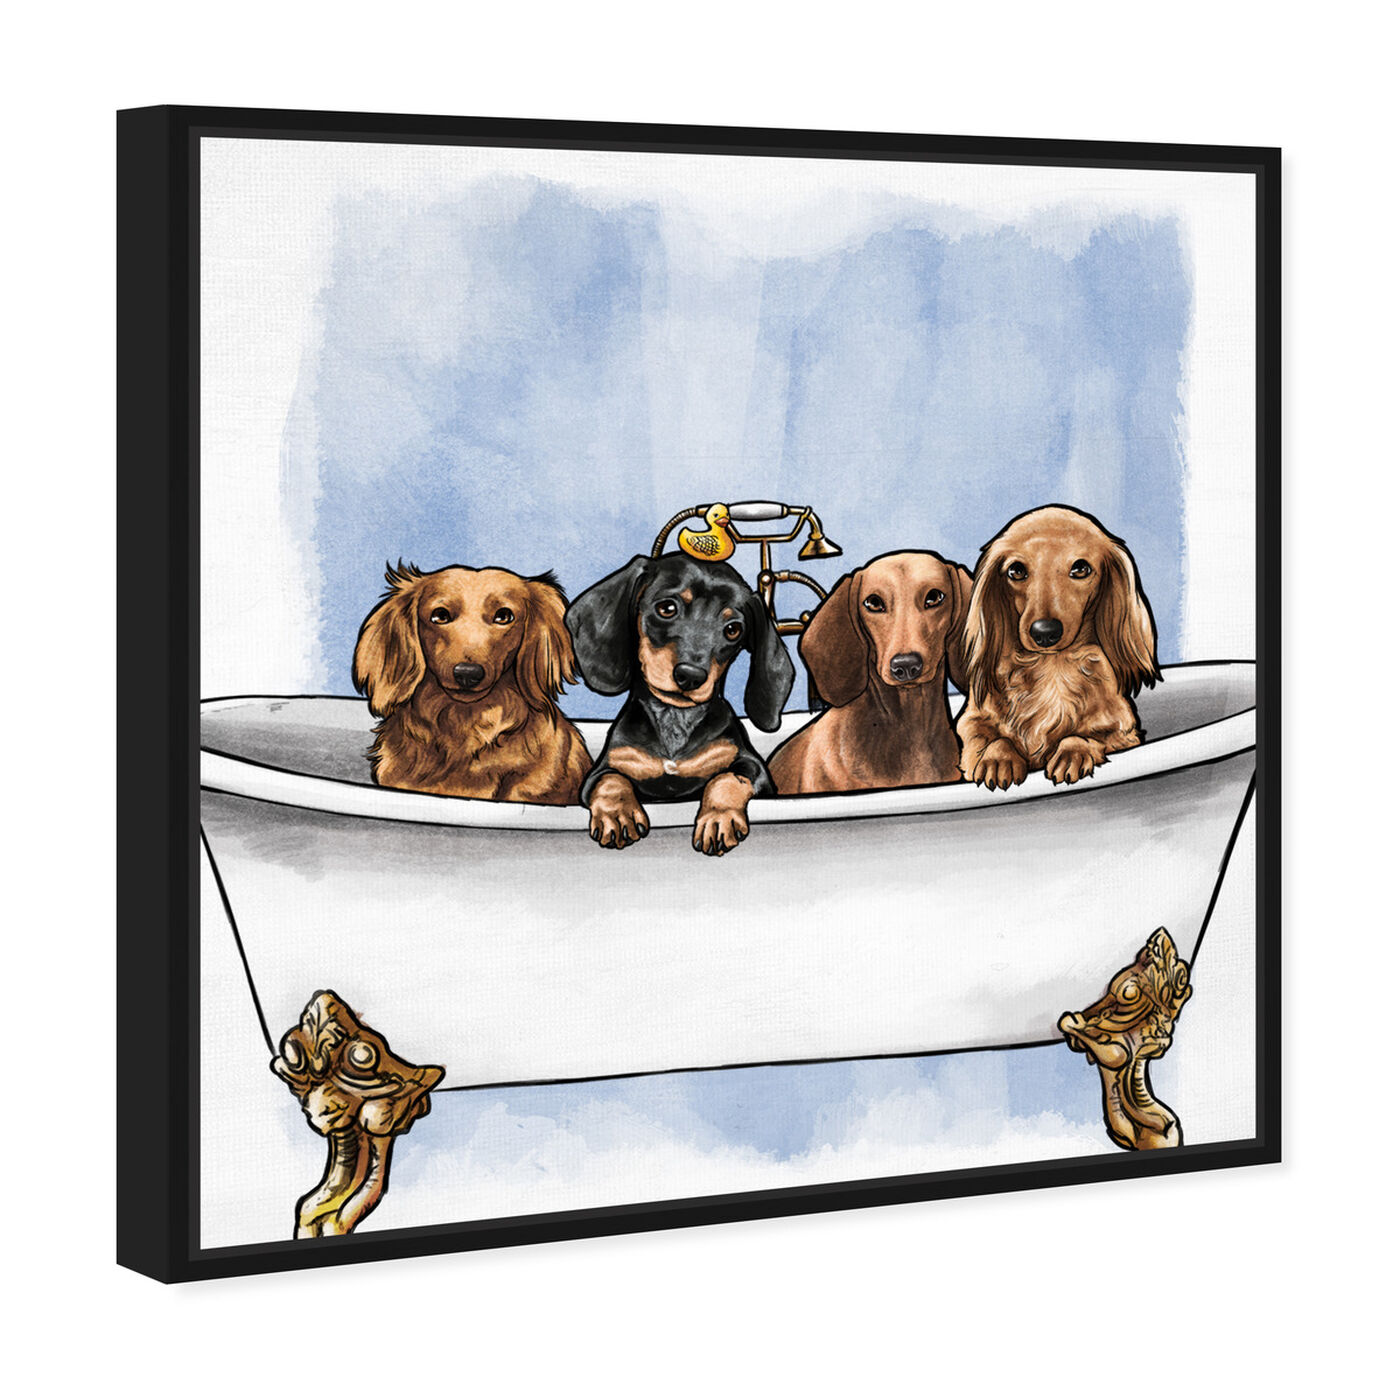 Angled view of Dachs in The Tub featuring animals and dogs and puppies art.